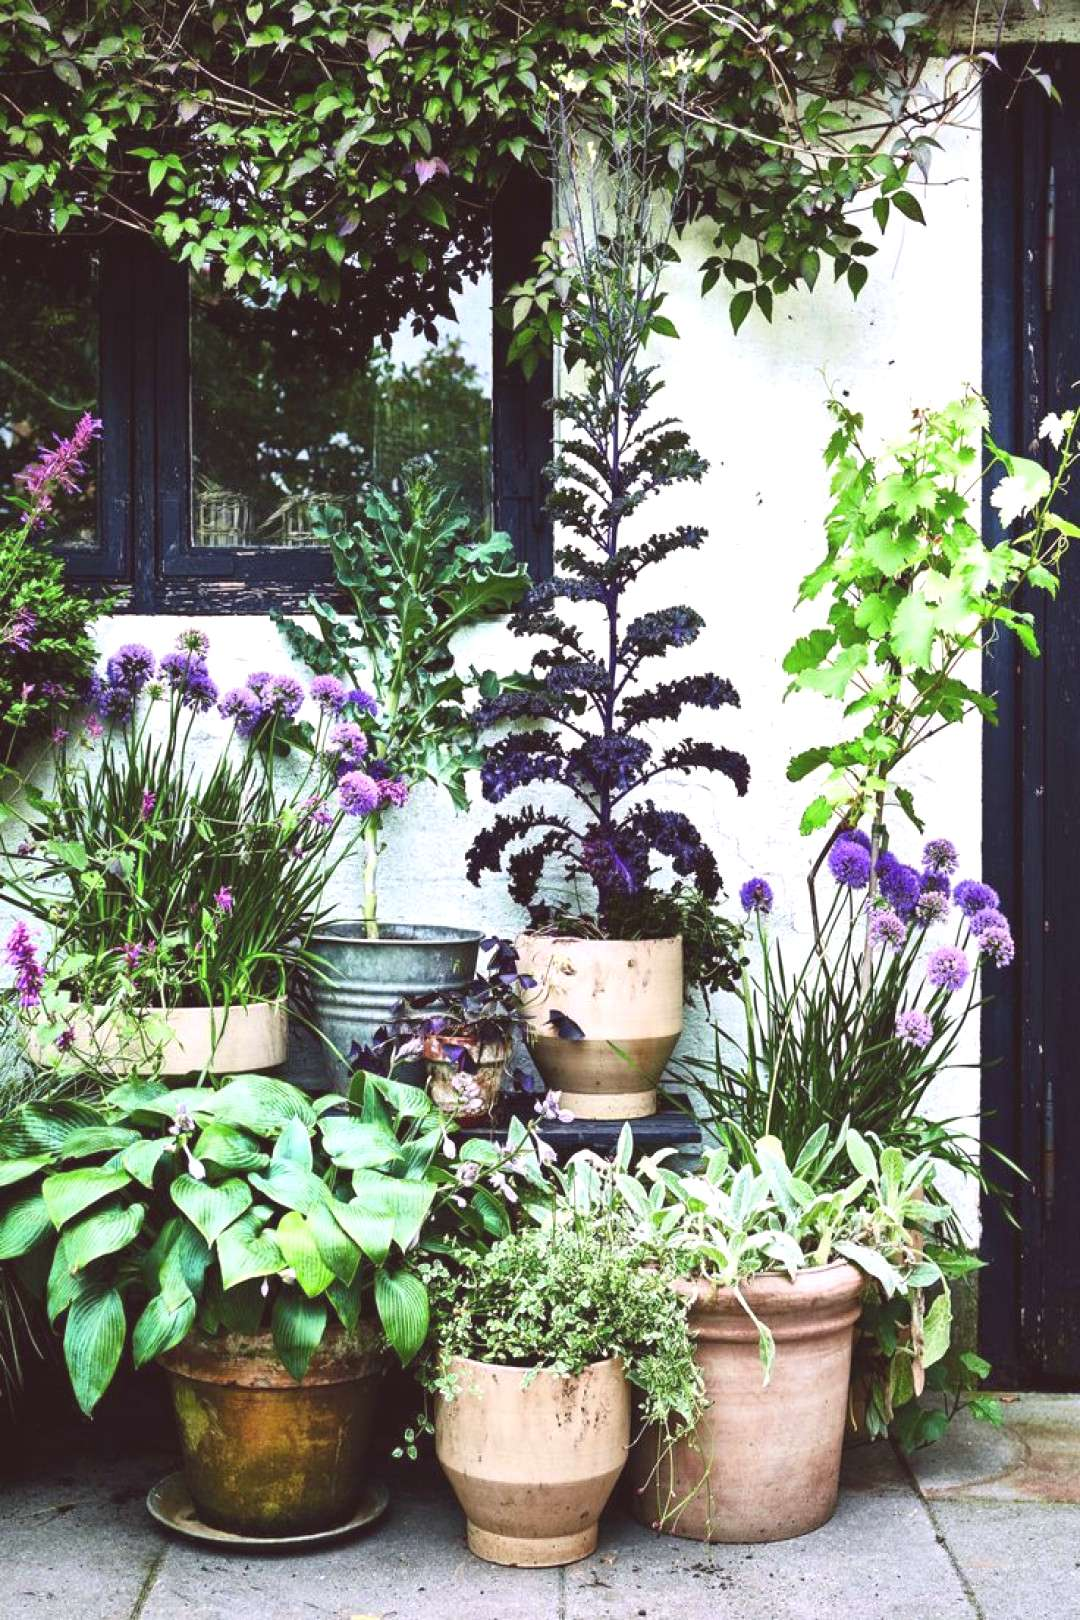 If you only have a small garden, courtyard or balcony, experimenting with container gardening is wo